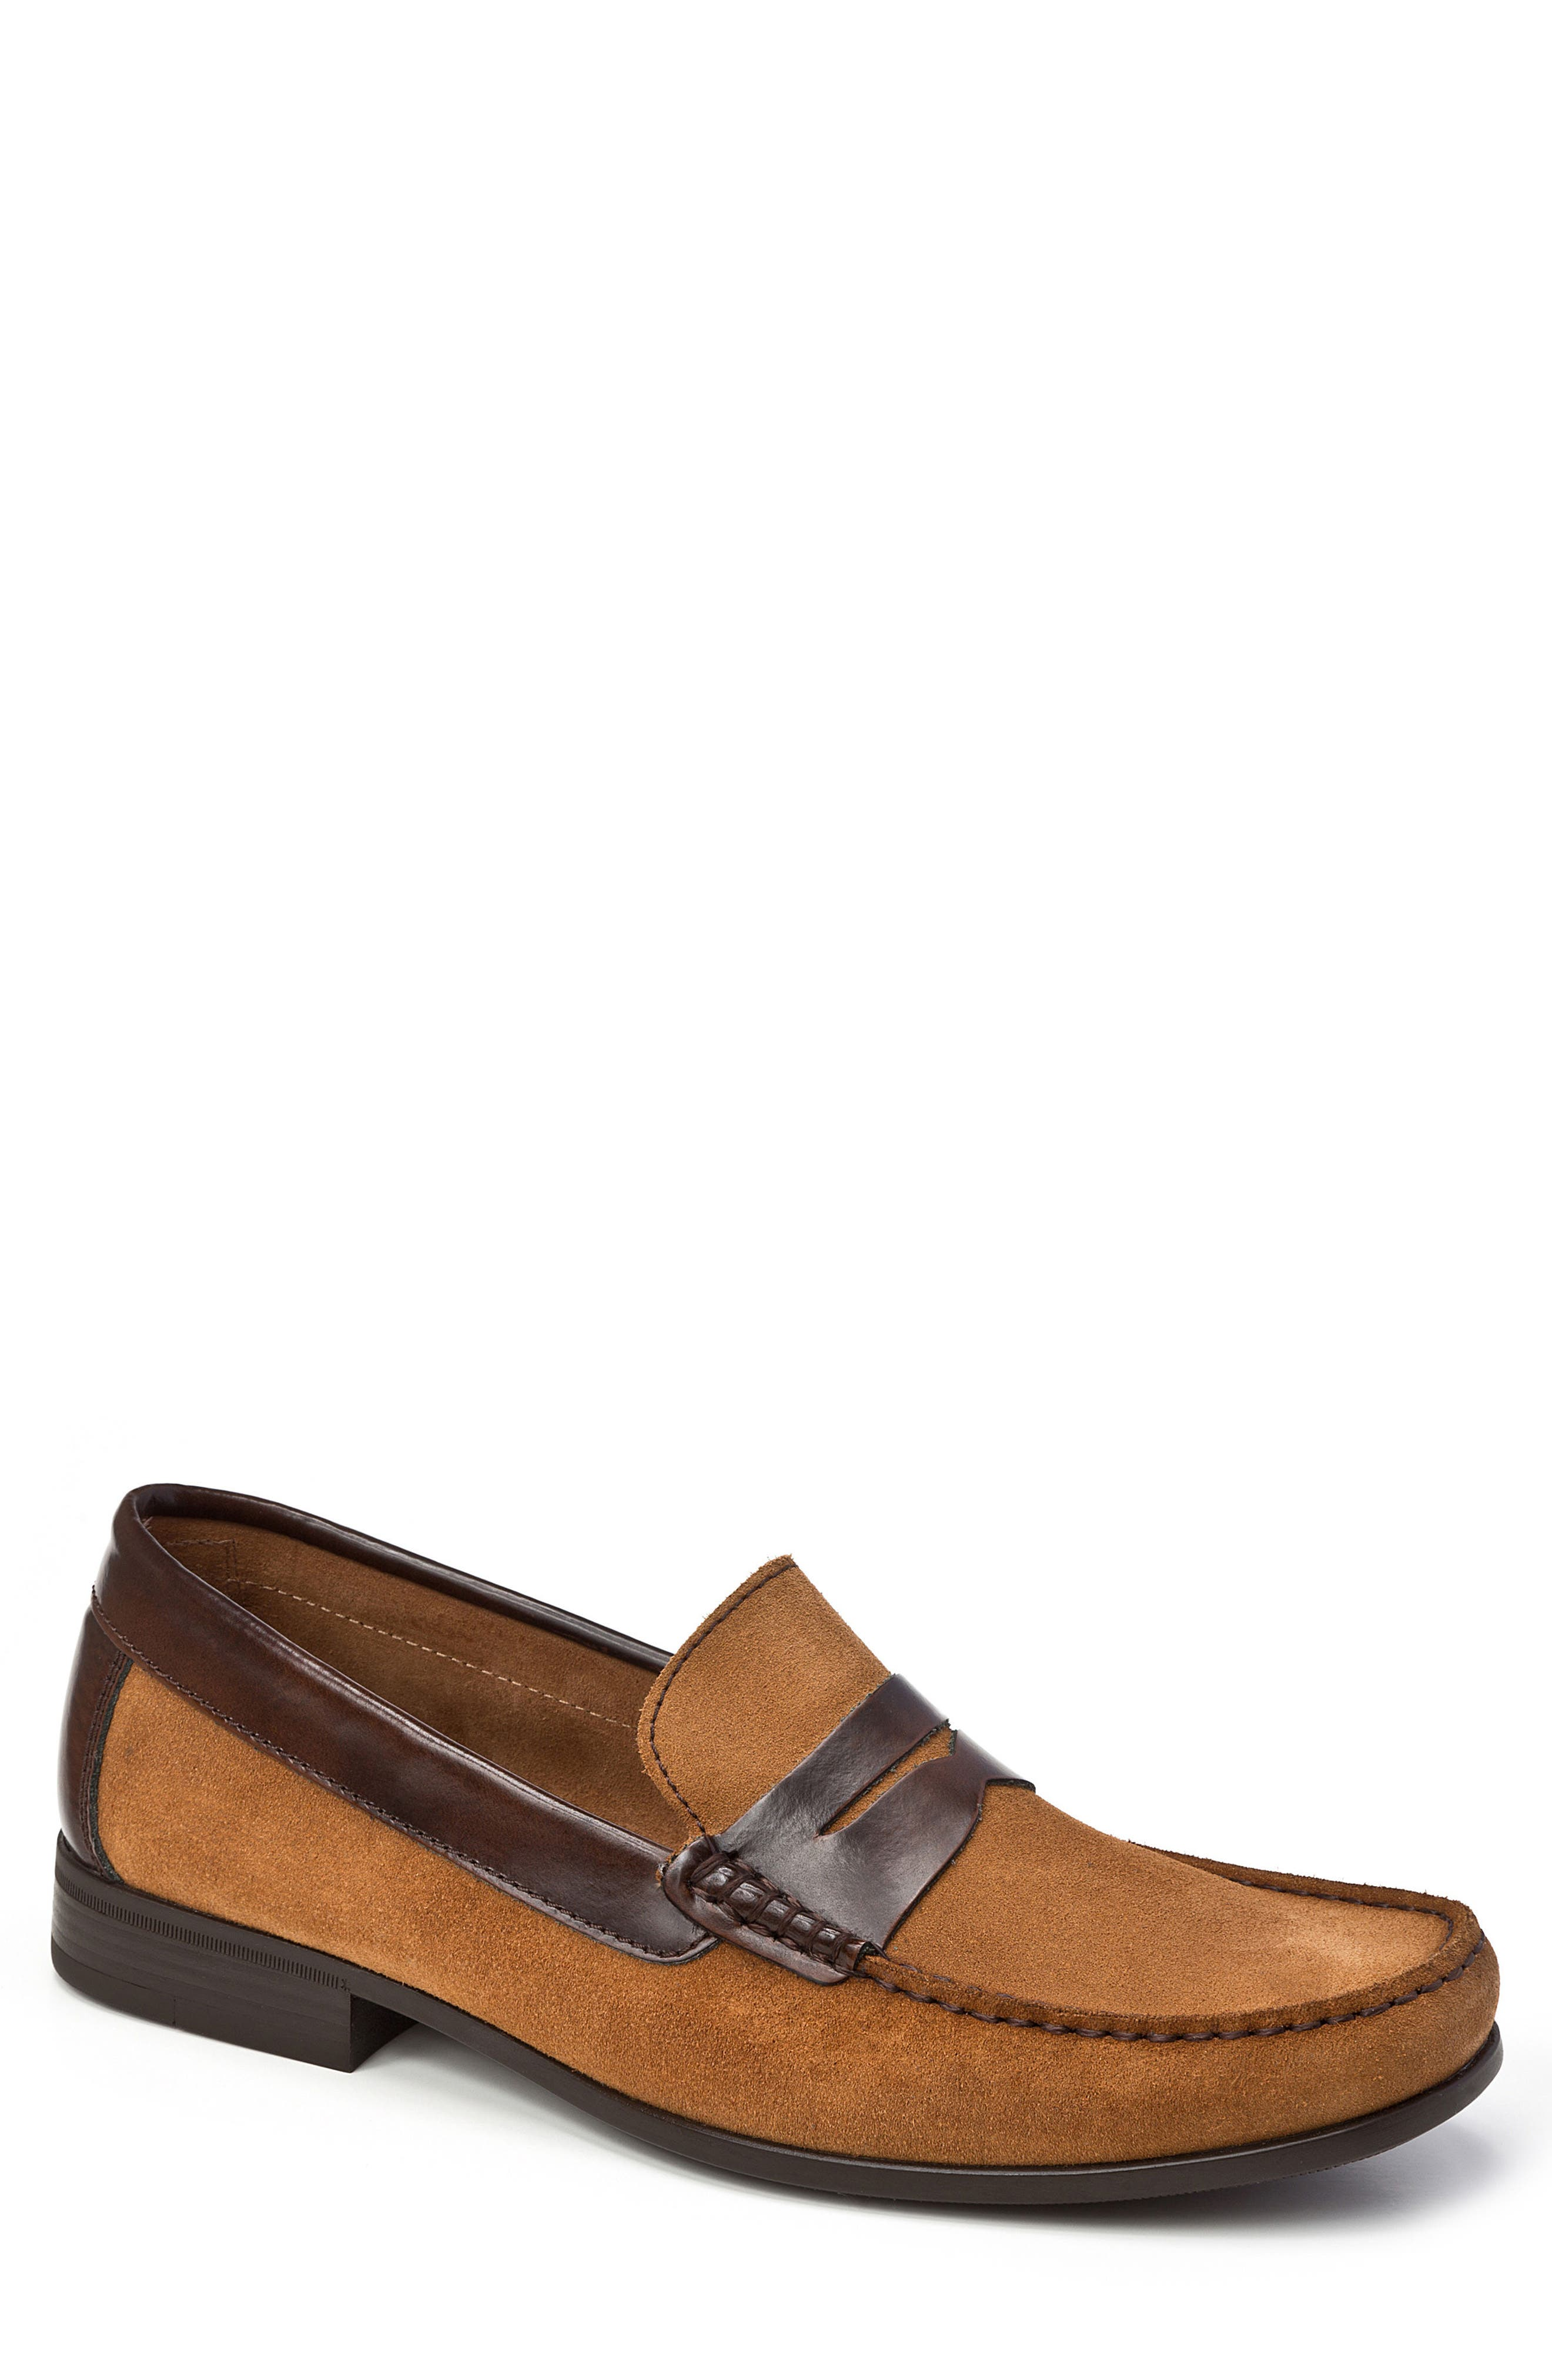 Lucho Penny Loafer,                         Main,                         color, 230